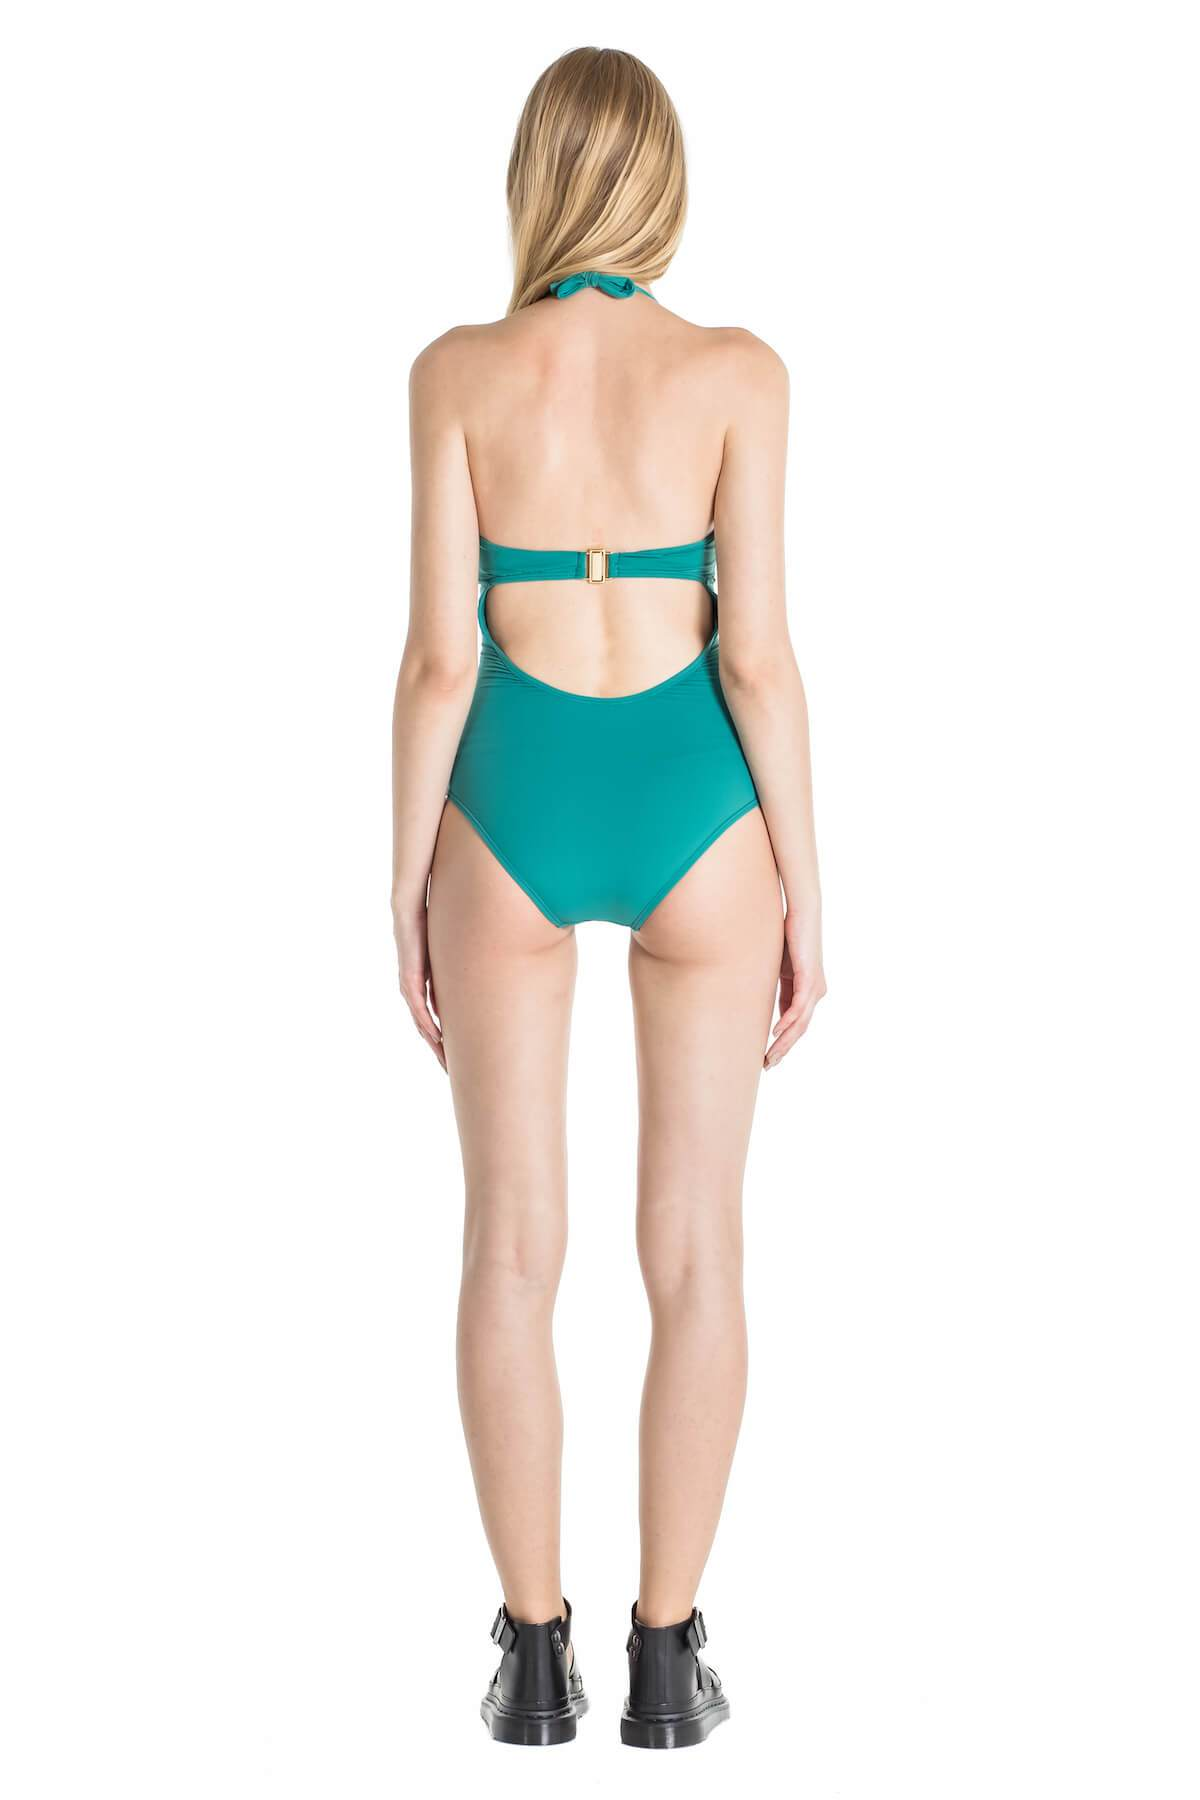 back of model wearing green one piece with halter tie at neck and one strap across back